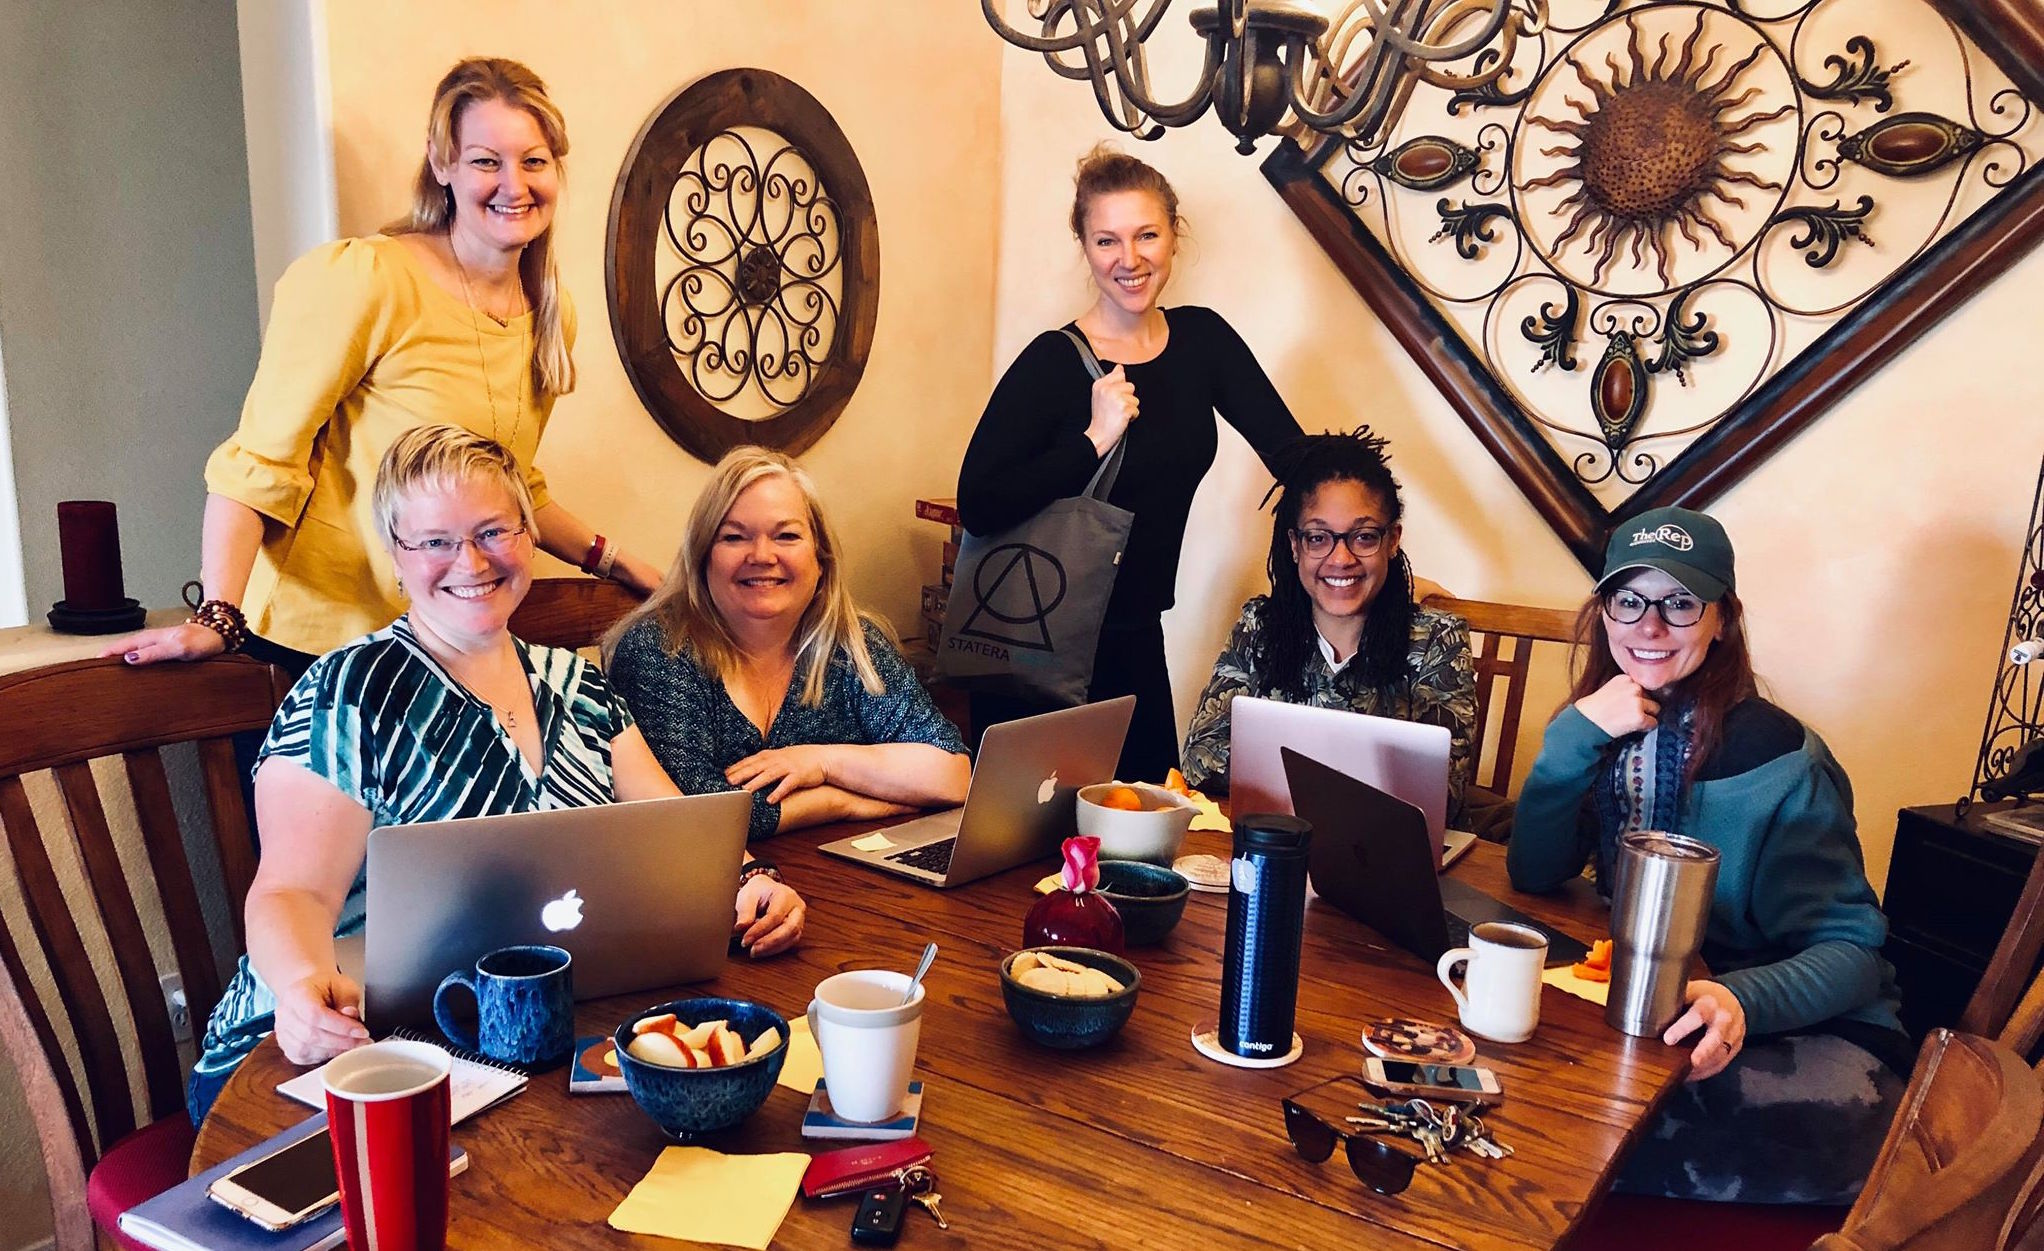 Statera Mentorship: Central Coast  regional coordinators during a recent meeting. Chrissy Collins (standing top-left) with (left to right) Z Jennifer Zornow, Kitty Balay, Karin Hendricks, Amani Dorn, and Emily Trask.